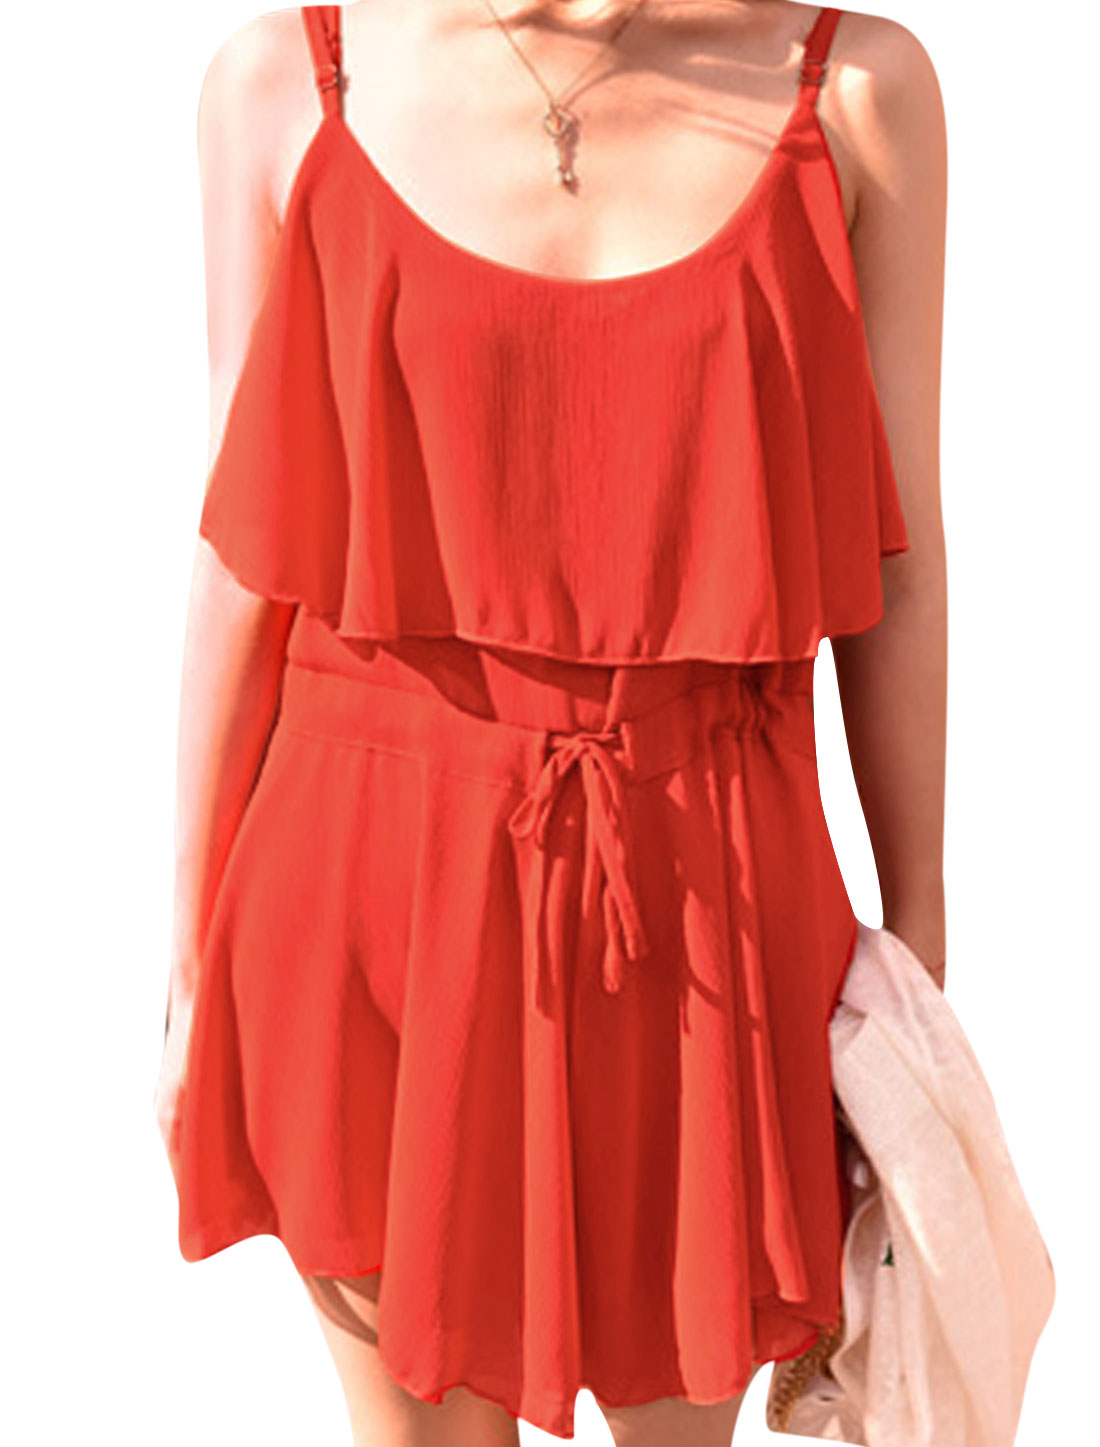 Women Scoop Neck Sleeveless Overlay Chiffon Rompers Orange Red XS